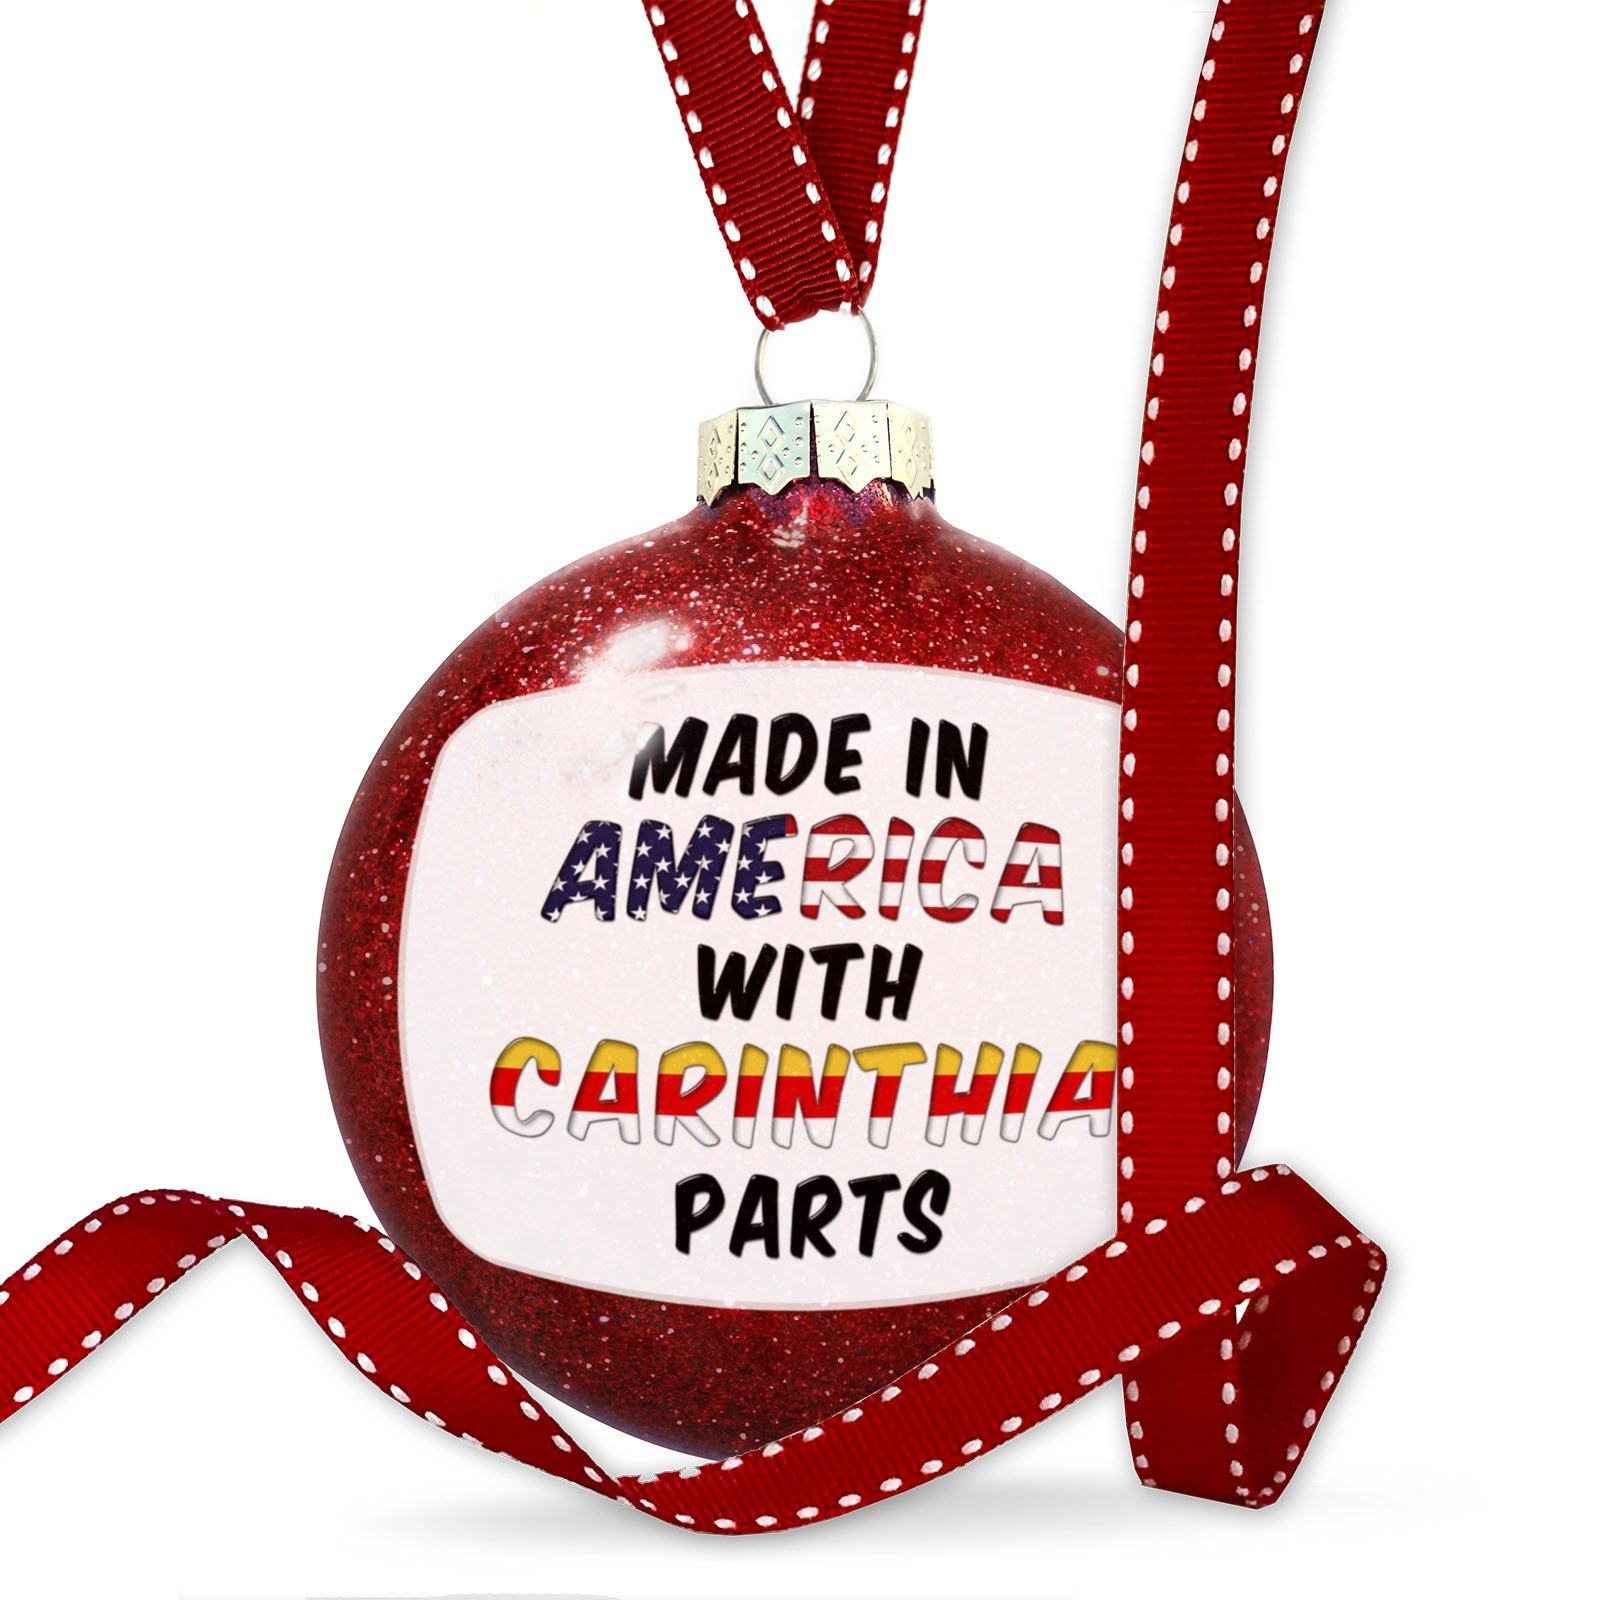 Christmas Decoration Made in America with Parts from Carinthia Ornament